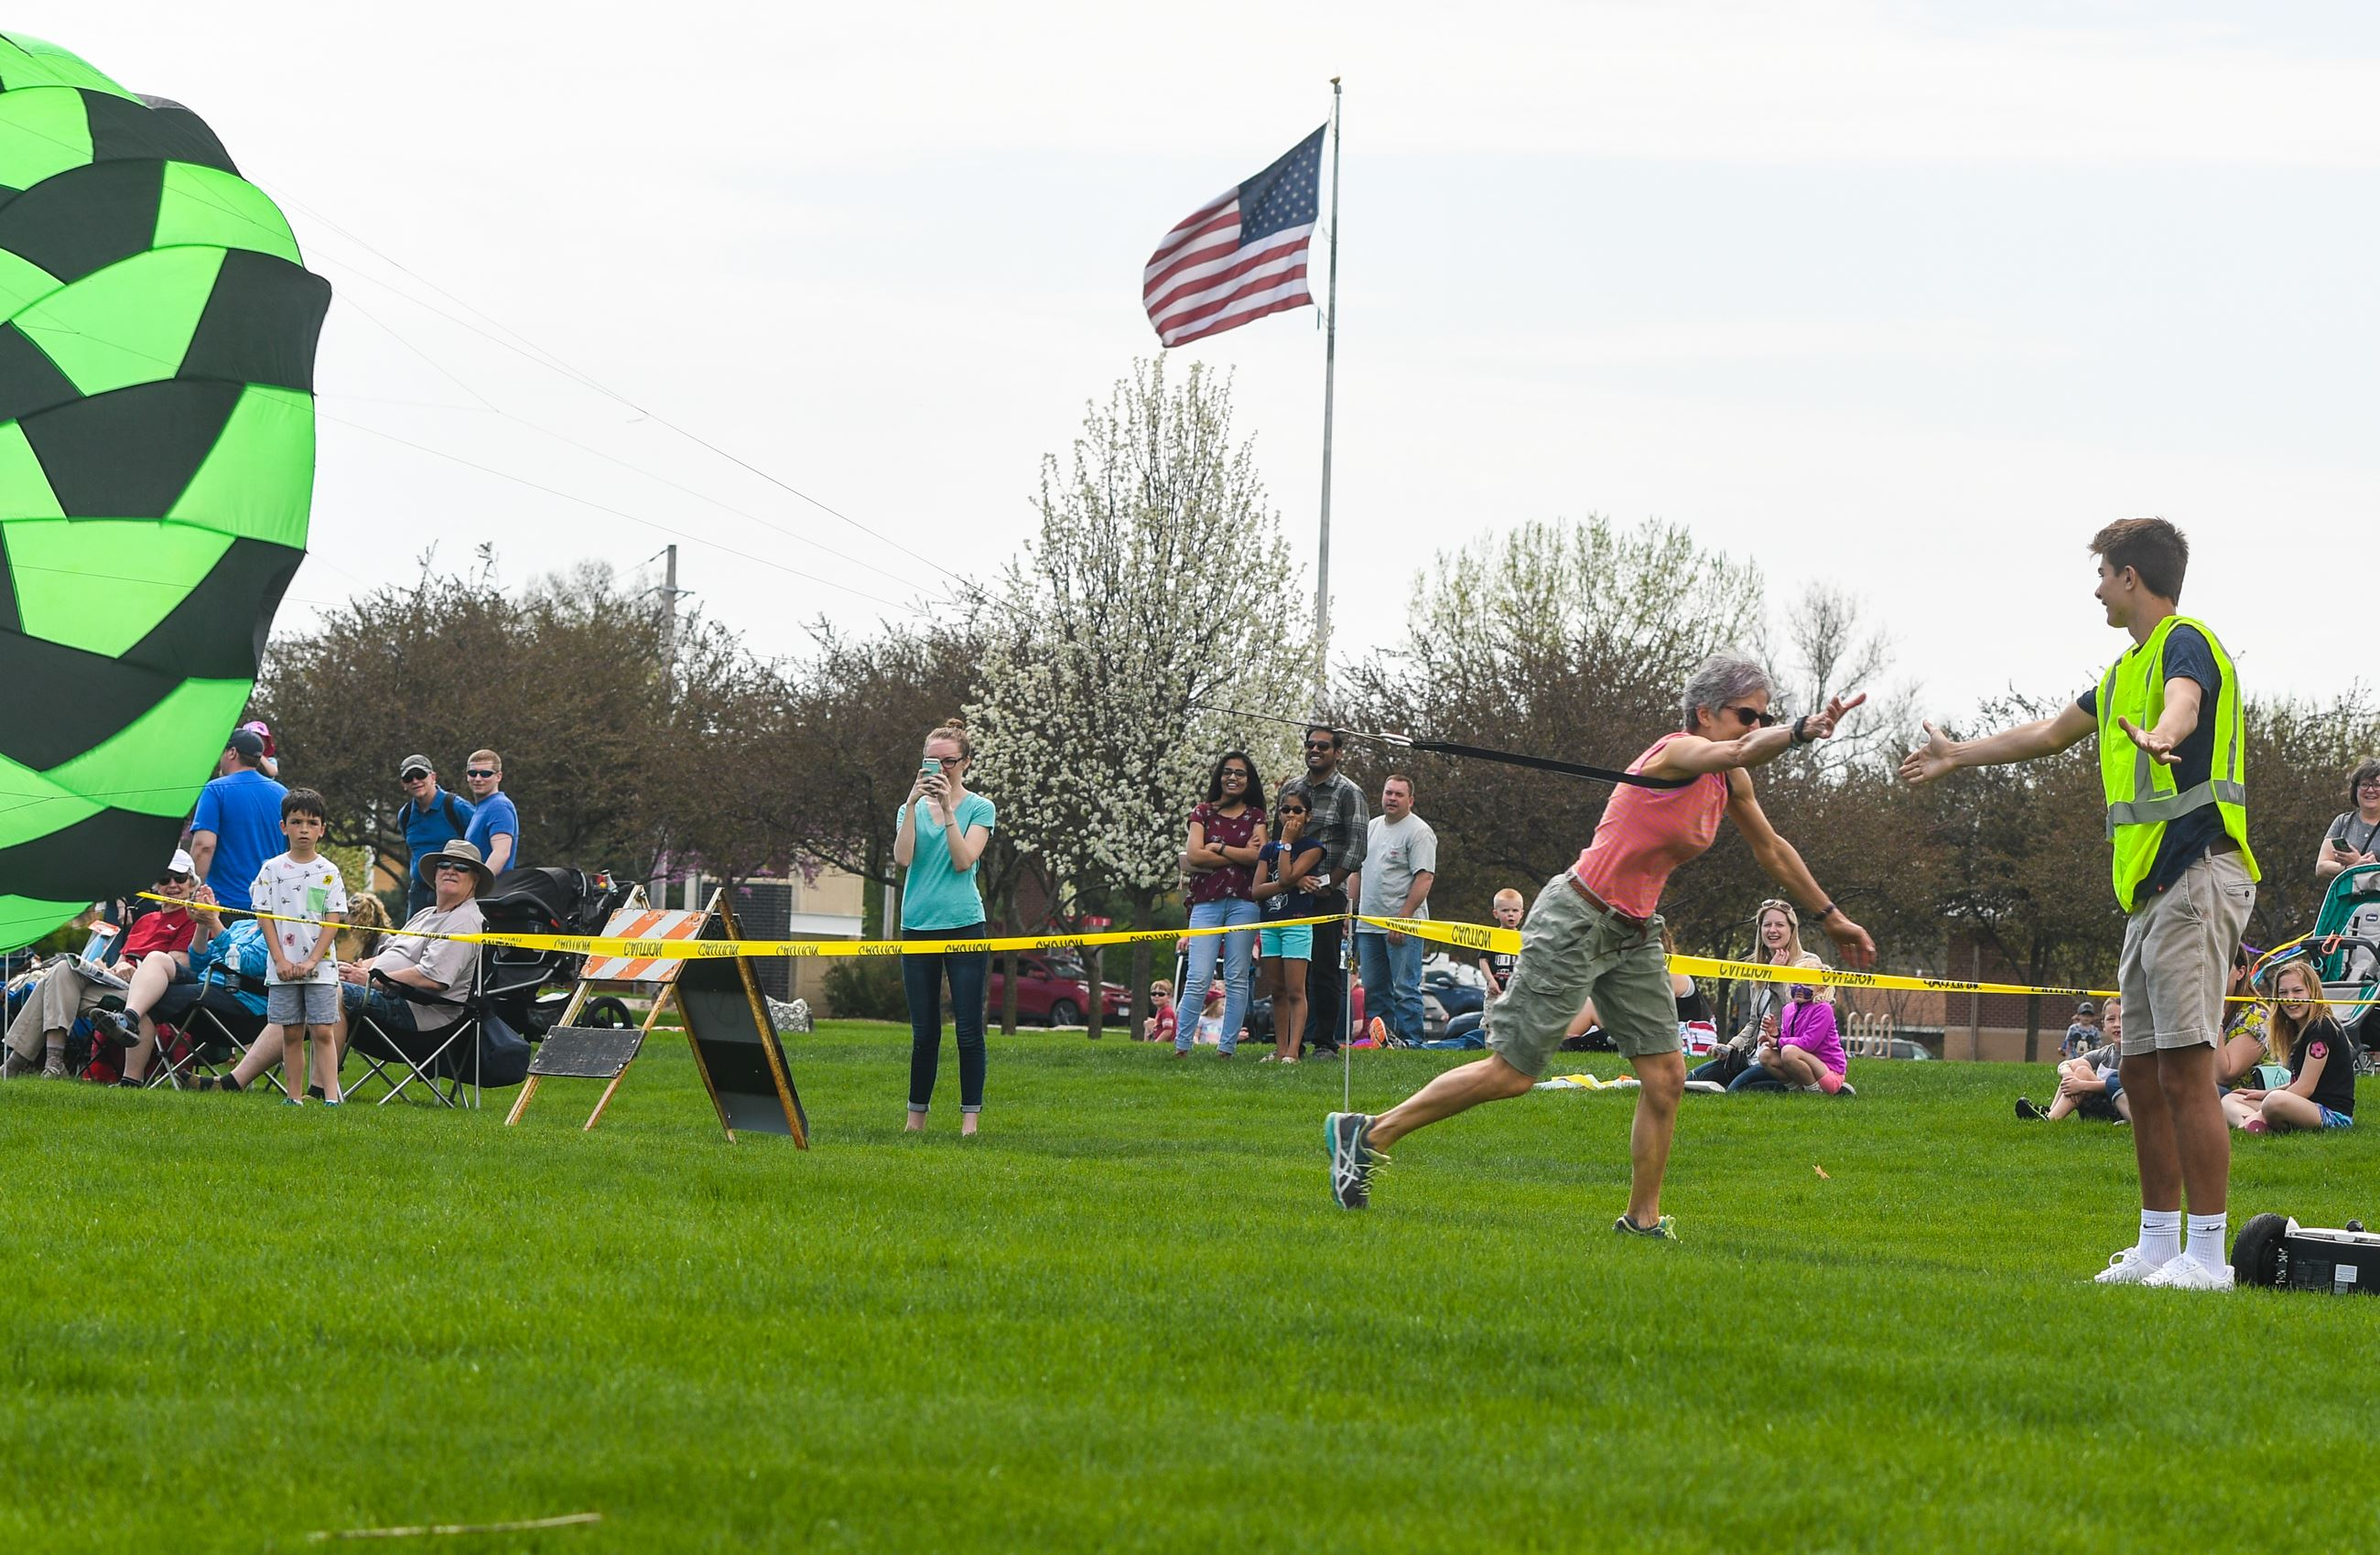 Kites on the Green 2018